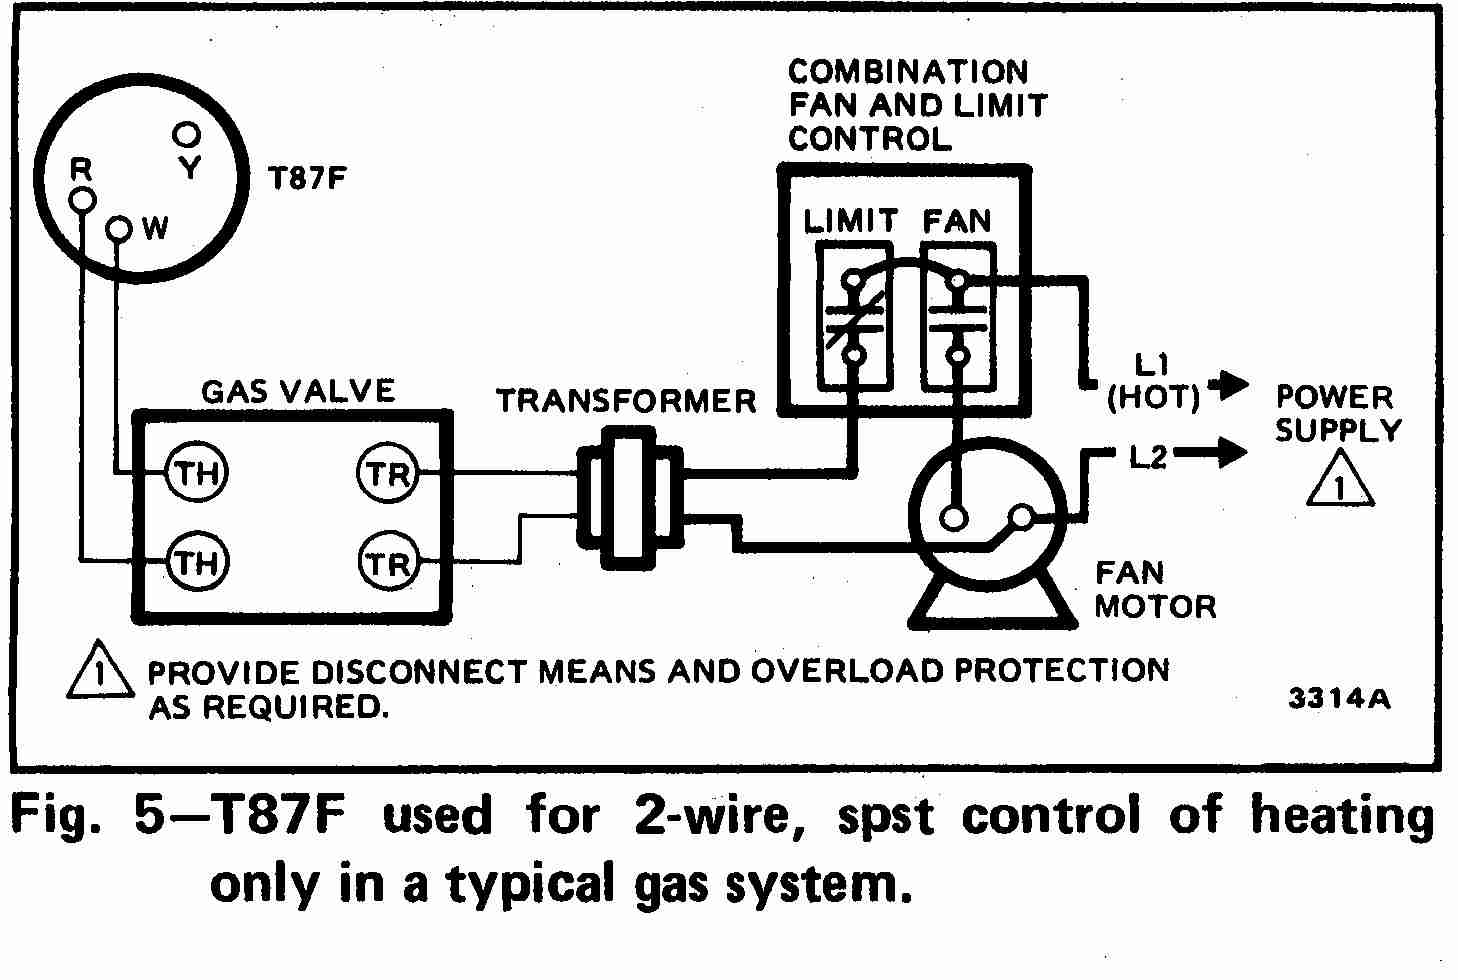 TT_T87F_0002_2Wg_DJF room thermostat wiring diagrams for hvac systems motor operated valve wiring diagram at gsmportal.co